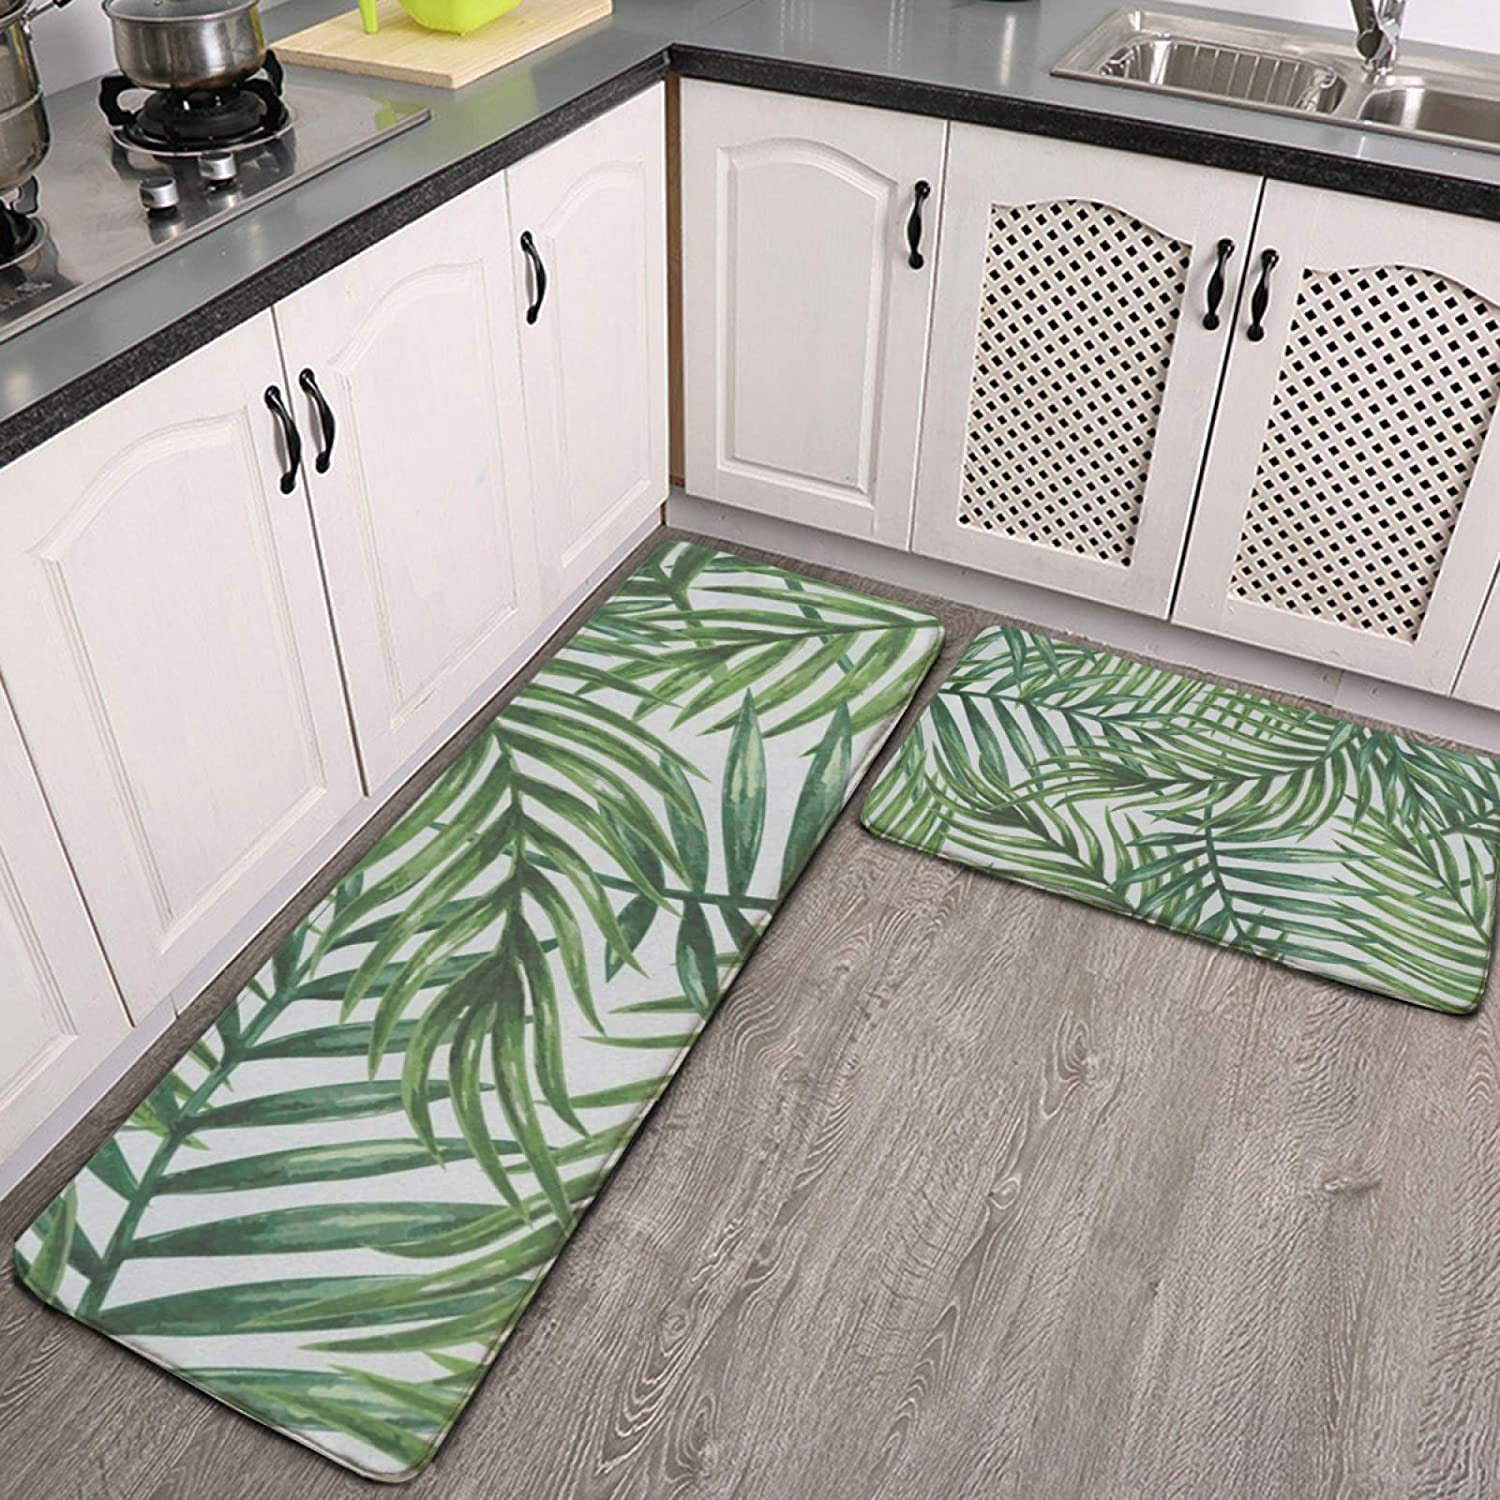 Deluxe Kitchen Mat Cushioned Anti Fatigue 2 Tre Set Palm Tropical Piece Regular store